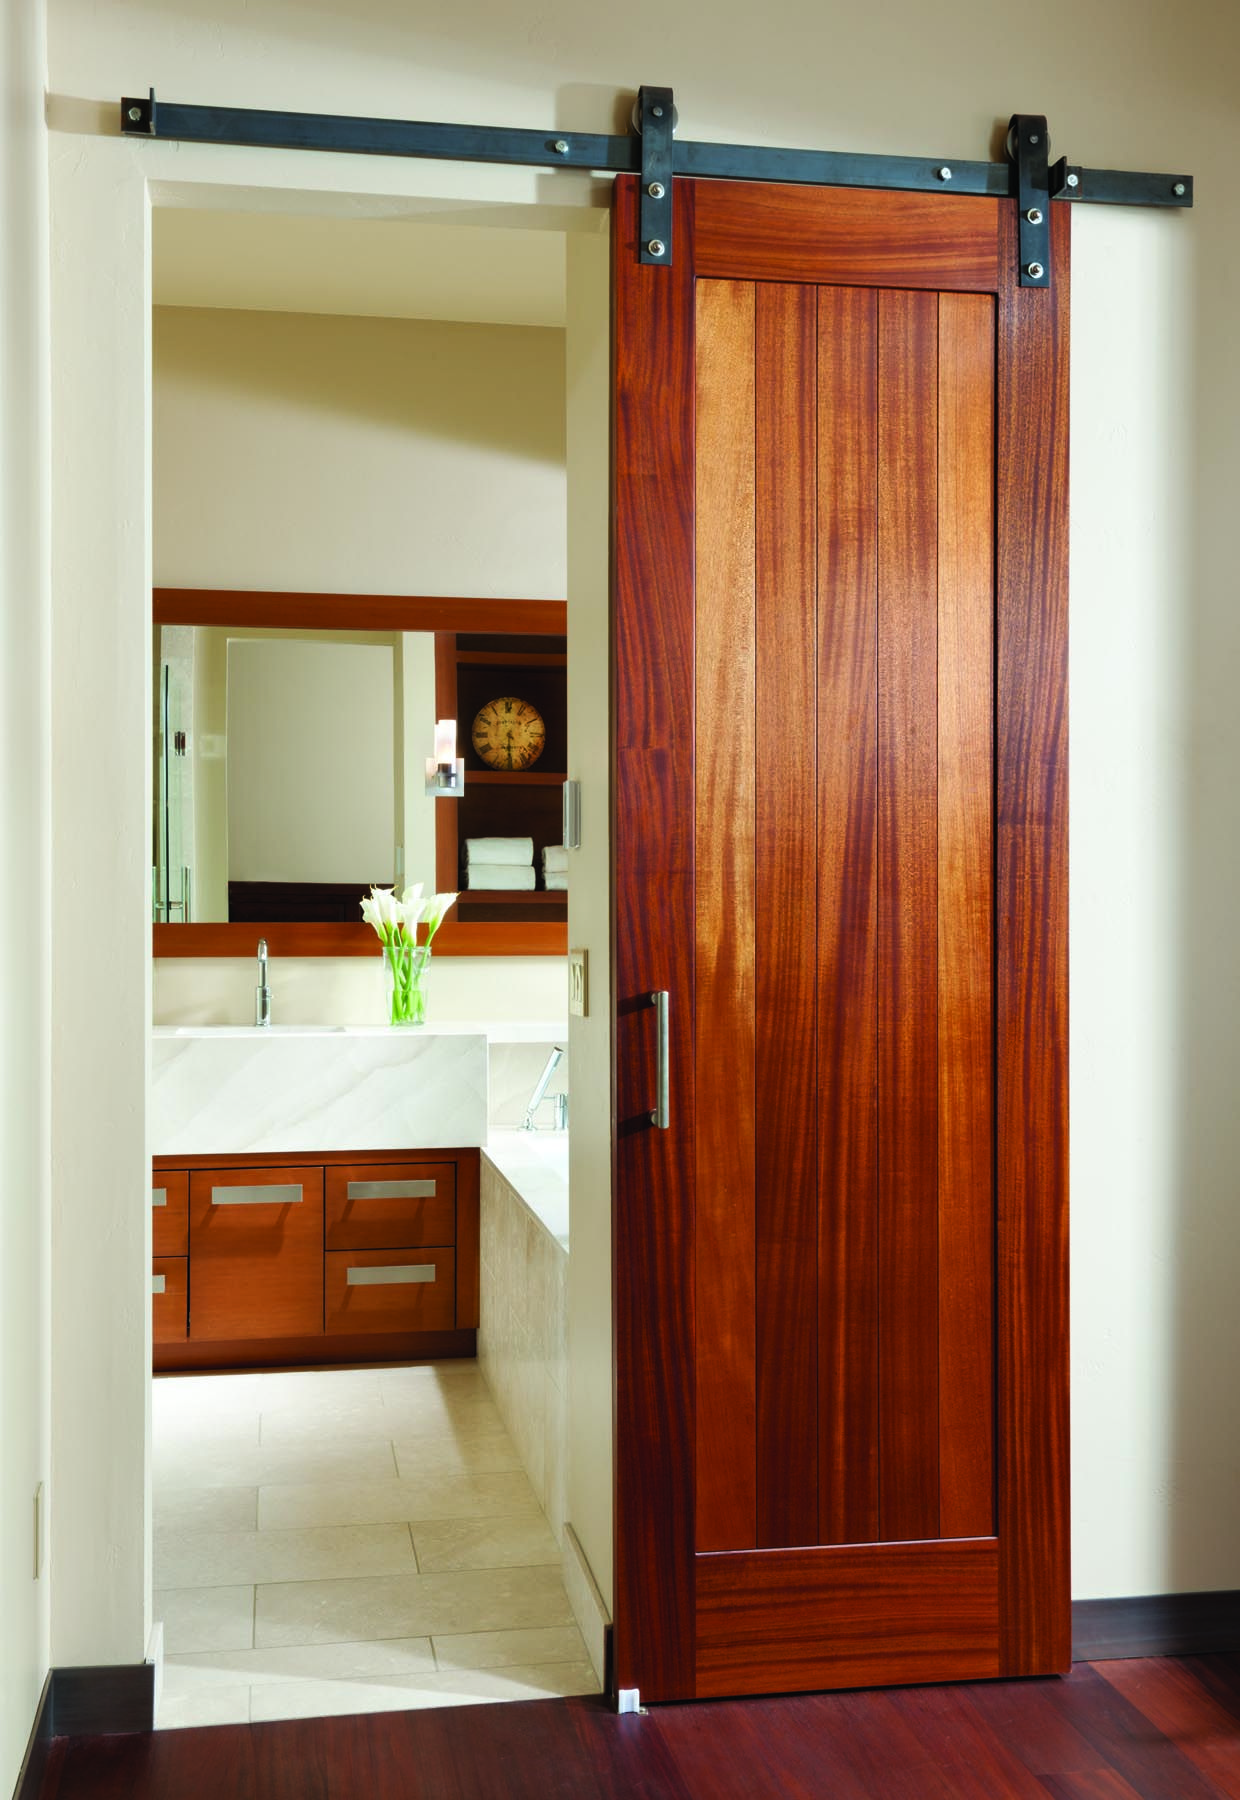 big sky journal custommade sliding barn doors outfit the bathroom and guest suites